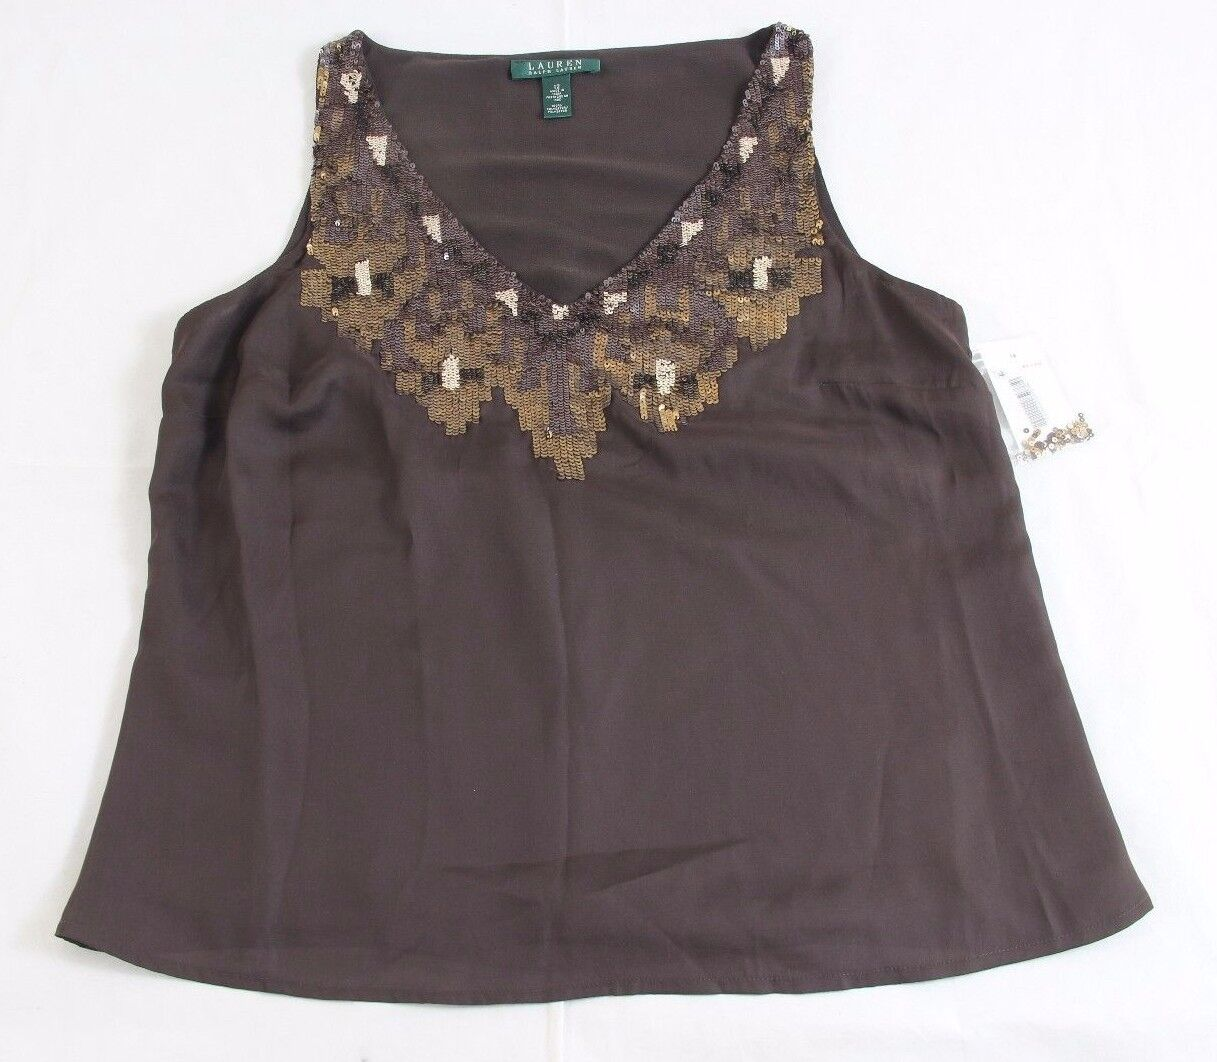 8a37b7e3ed BNWT Ralph Lauren Brown Decorative Sleeveless Tank Top Size 12 100%  Authentic